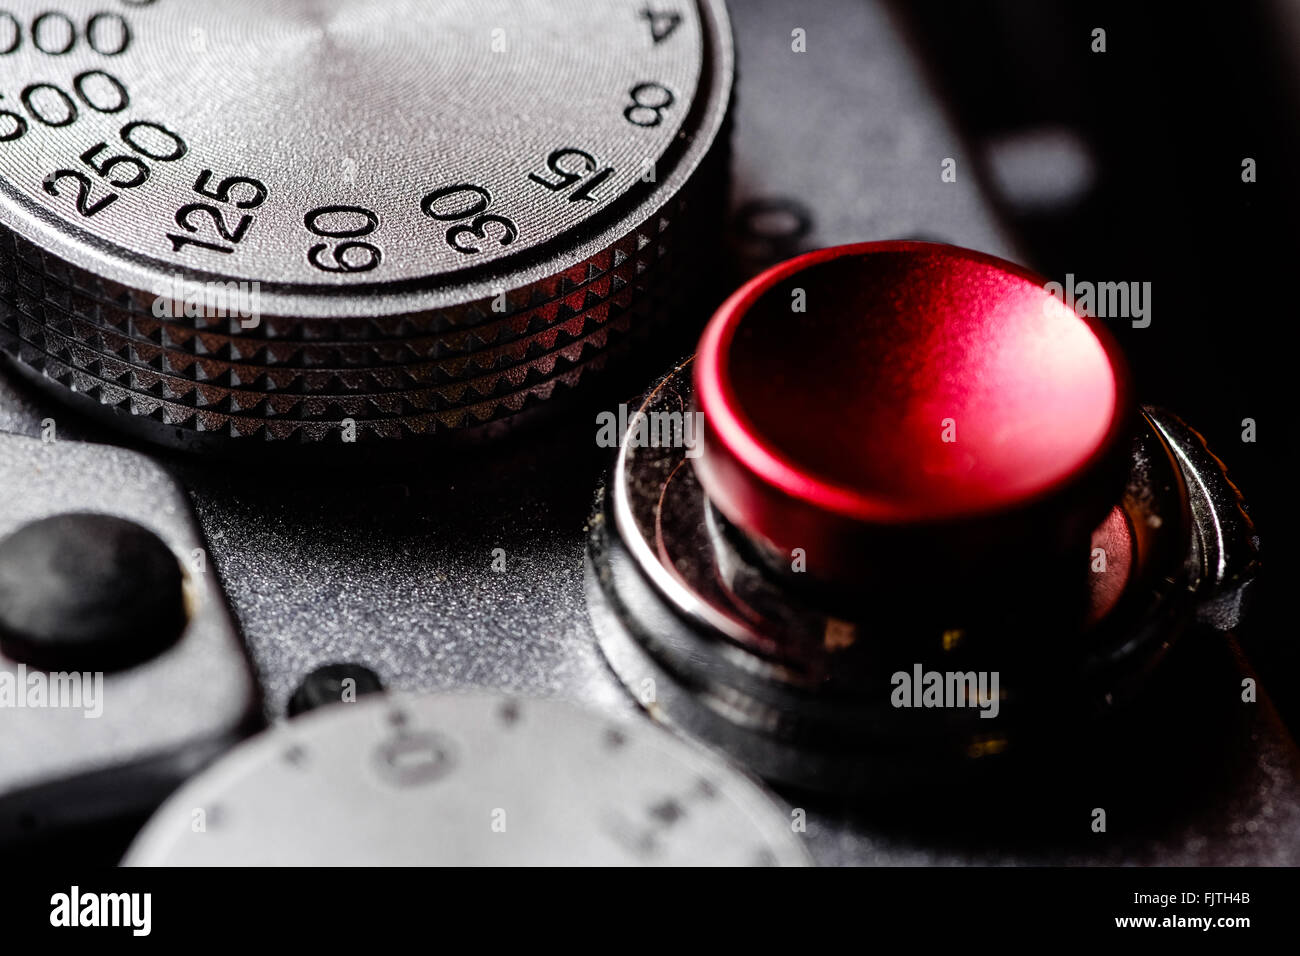 Close-Up Of Camera - Stock Image